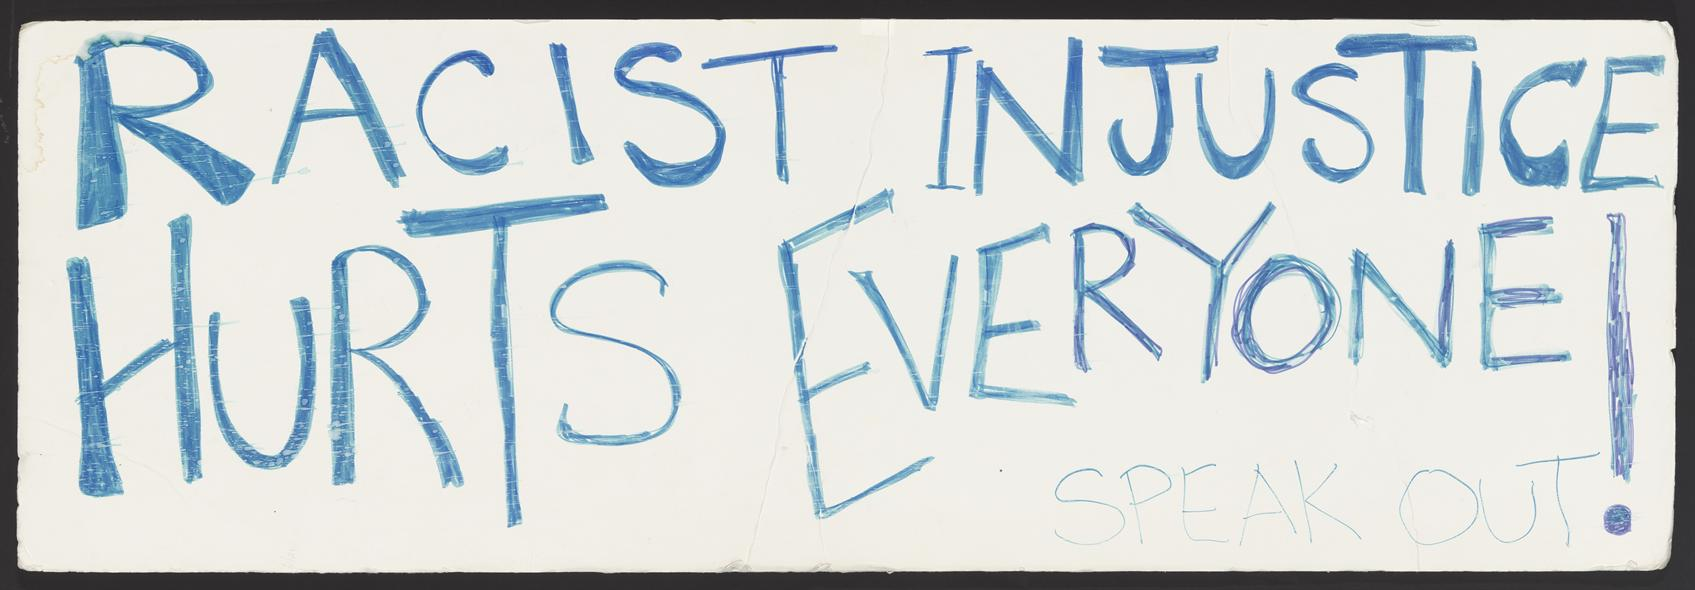 """photo of hand drawn side with the phrase """"Racist Justice Hurts Everyone Speak Out!"""